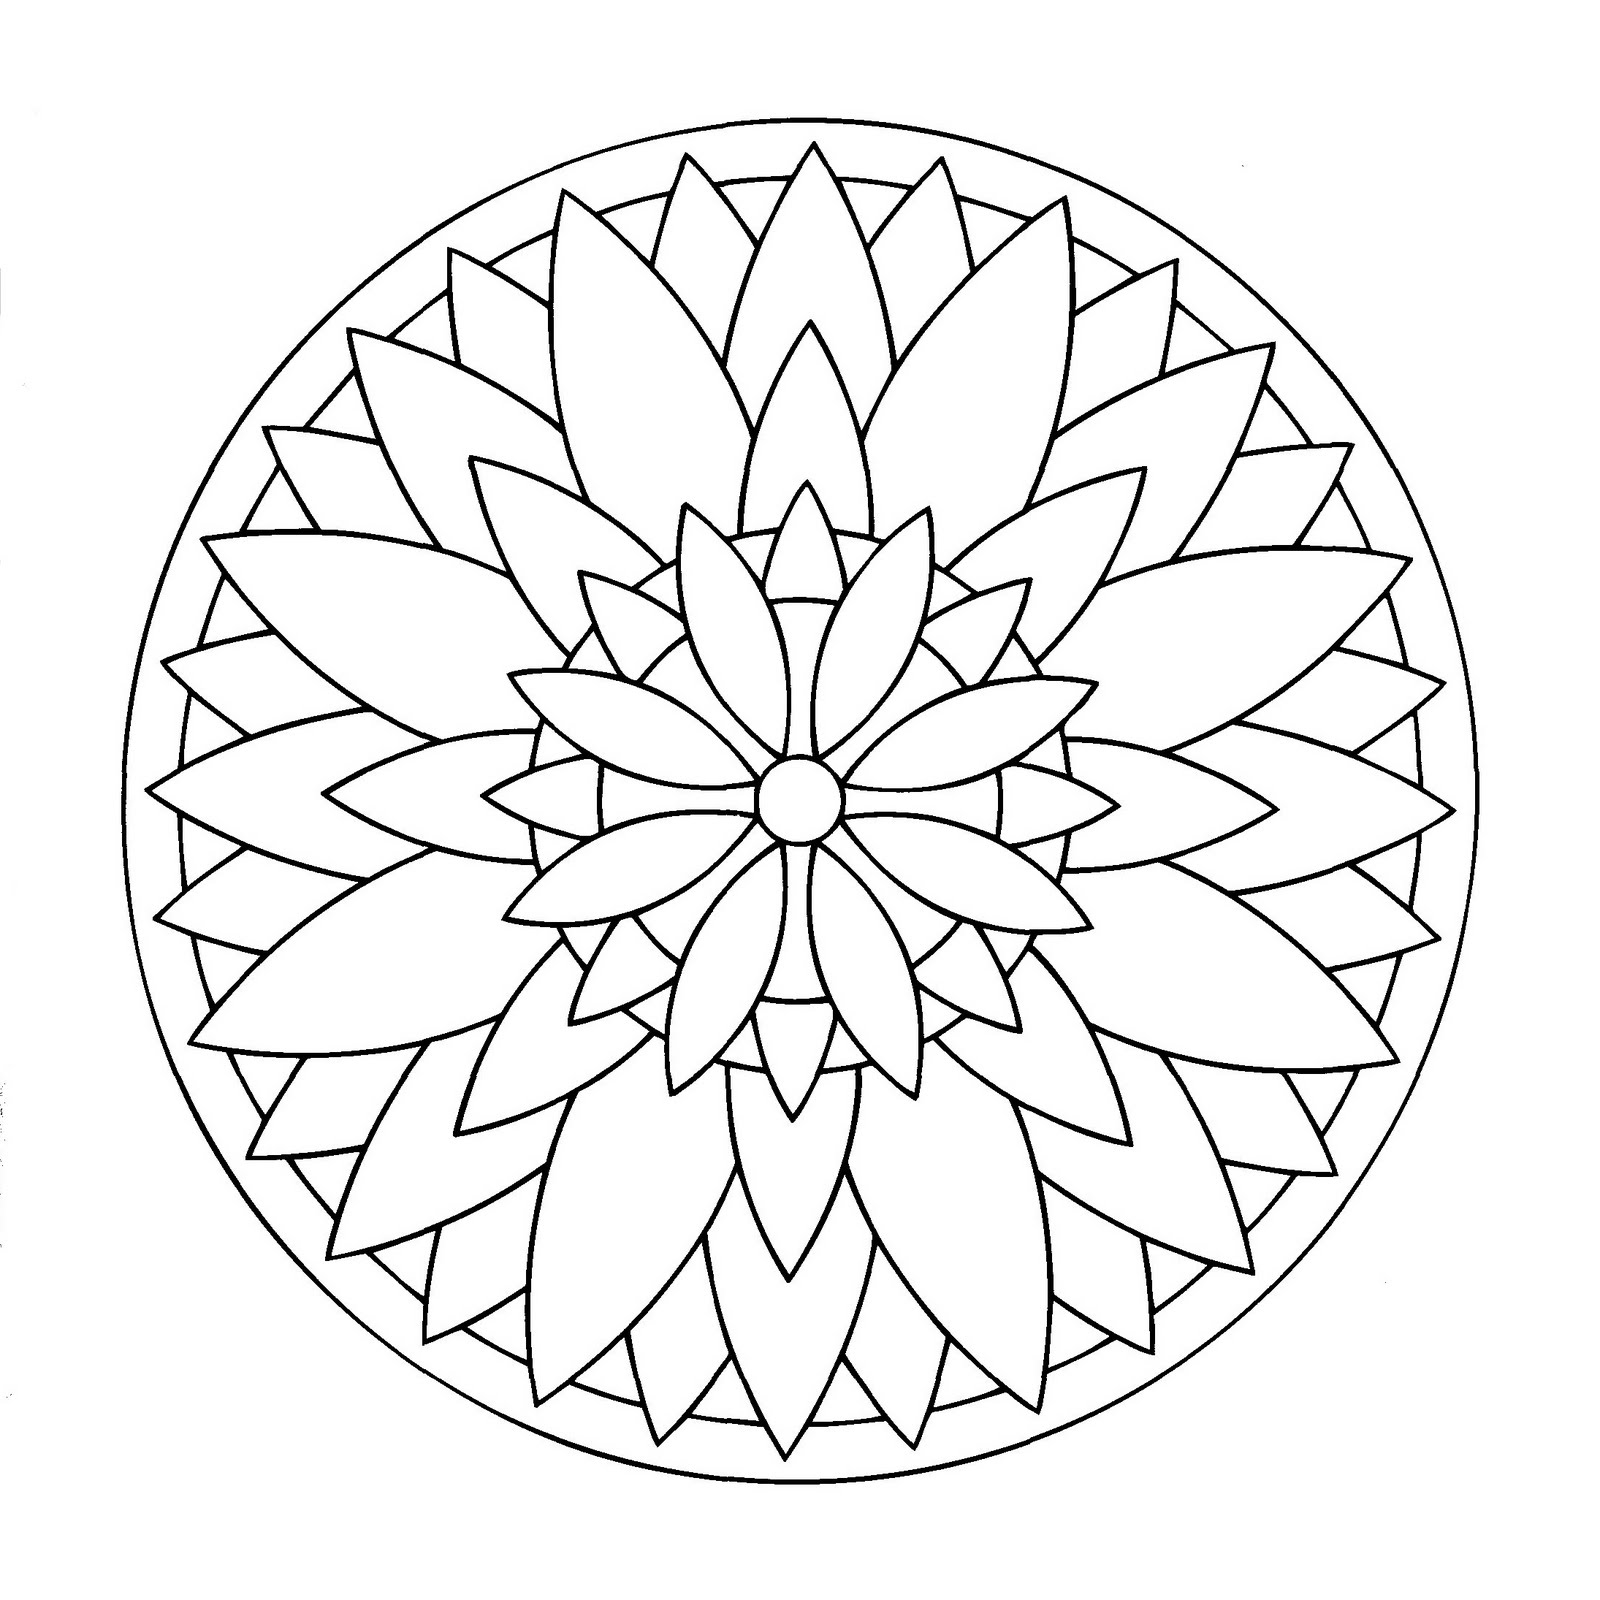 simple mandalas to color simple mandala 49 mandalas coloring pages for kids to mandalas to simple color